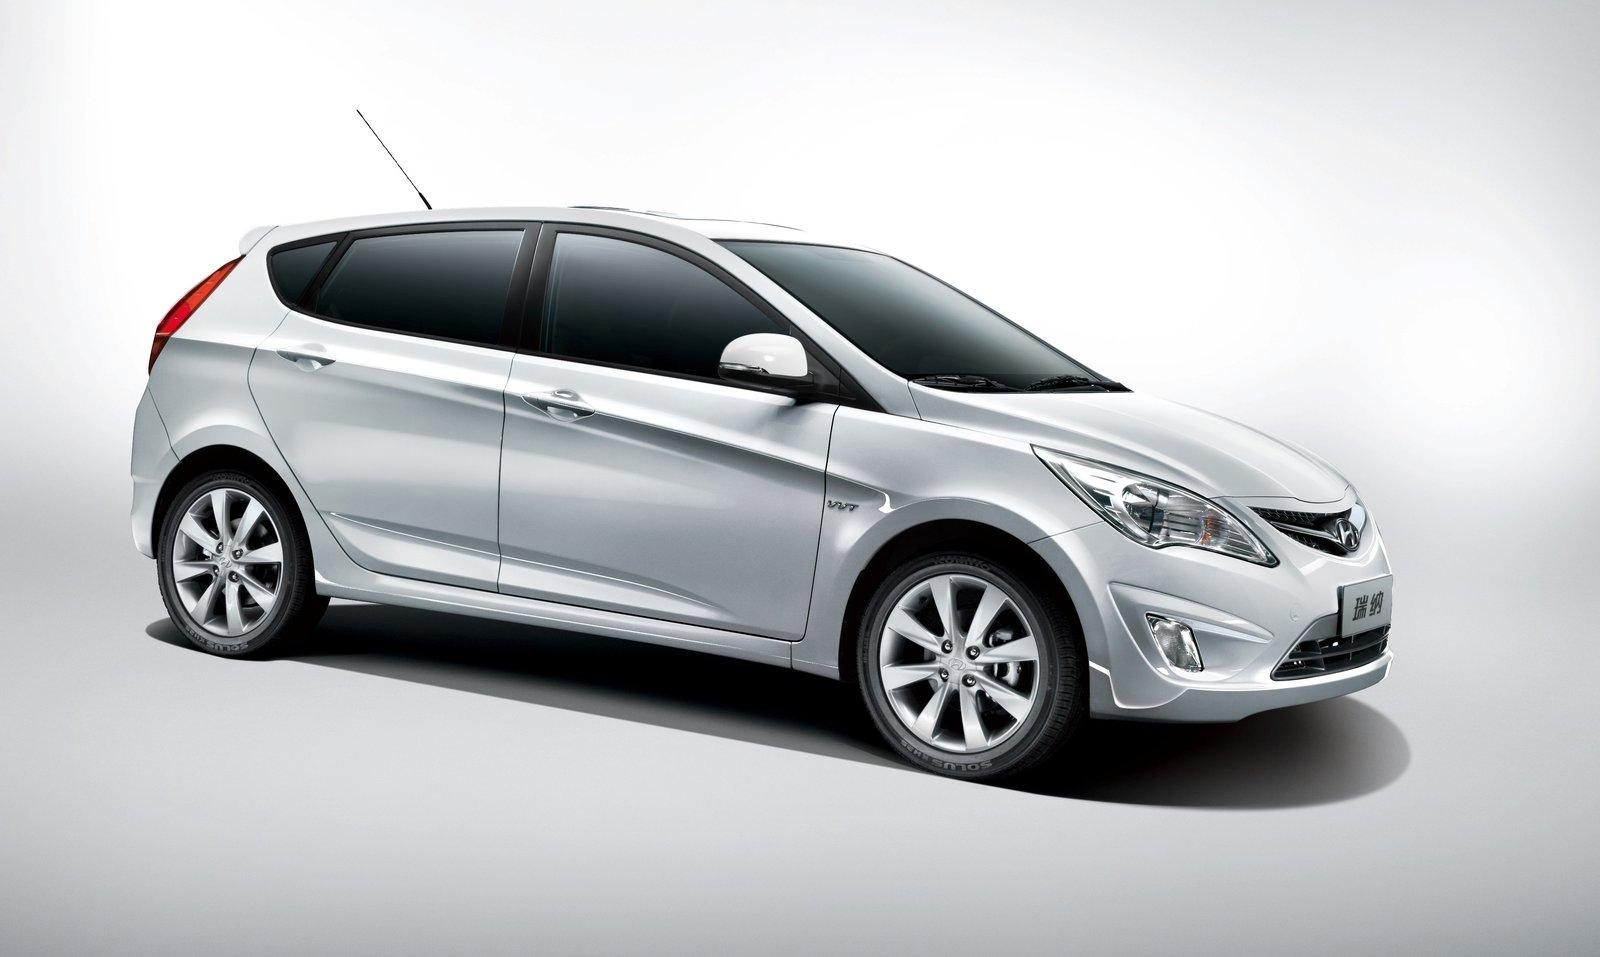 Hyundai-Verna-5-door-hatchback